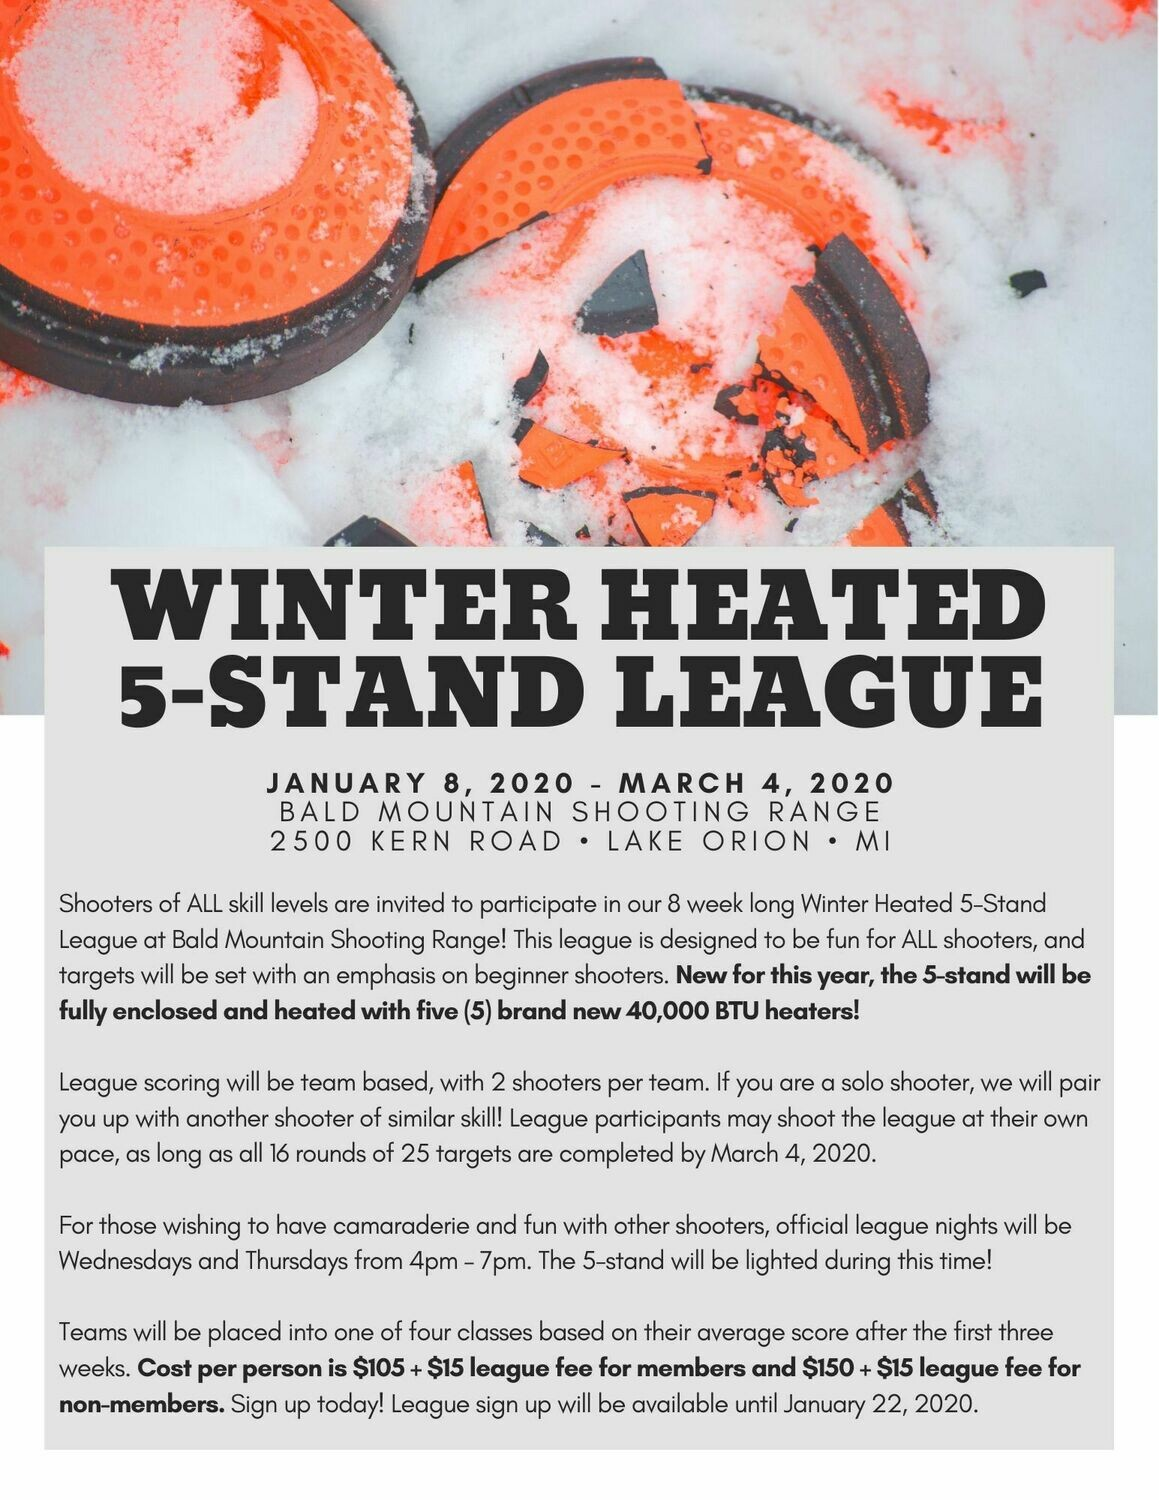 2020 Winter Heated 5-Stand League